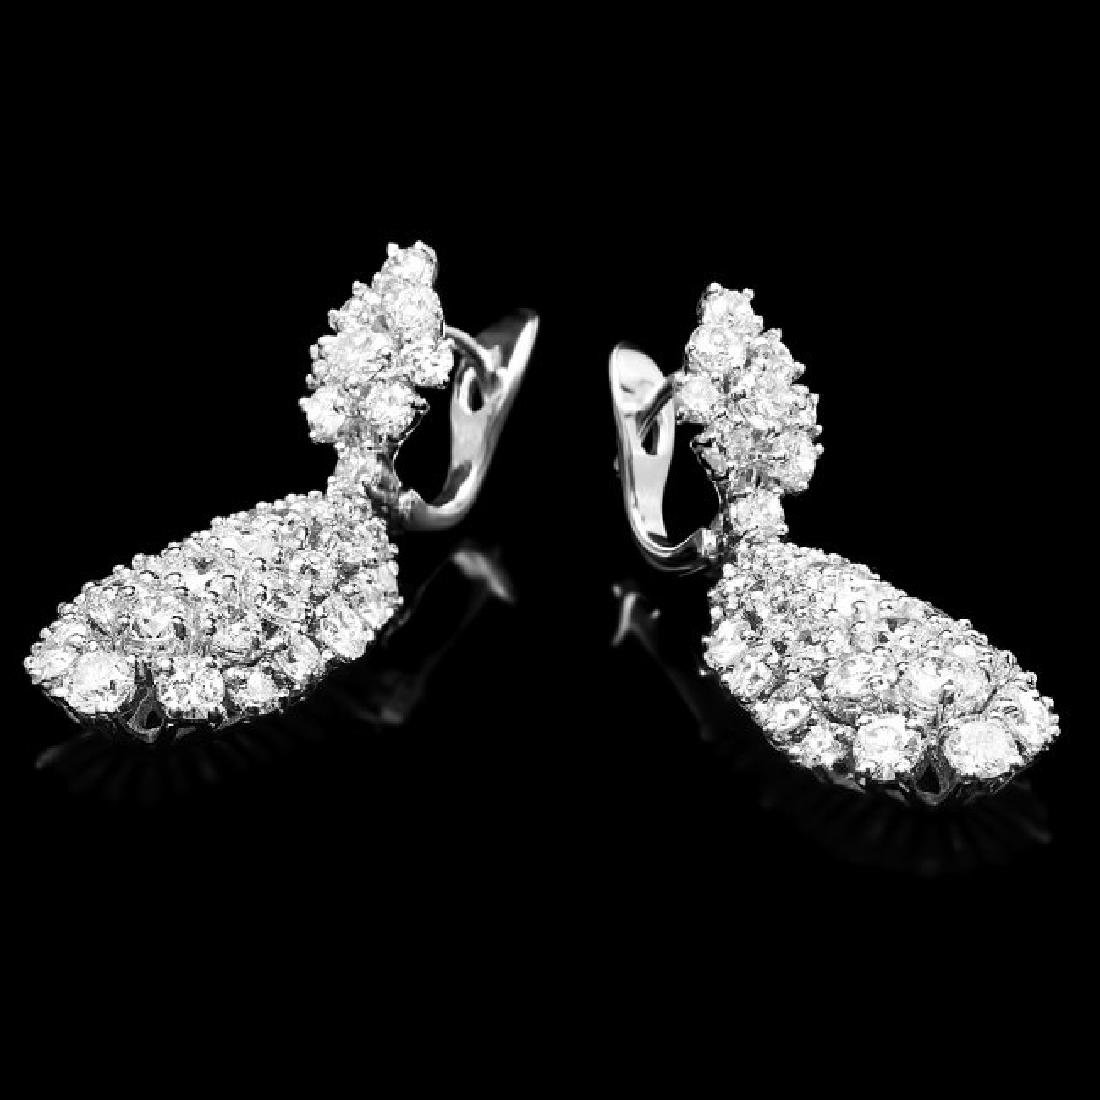 14k Gold 5.32ct Diamond Earrings - 2